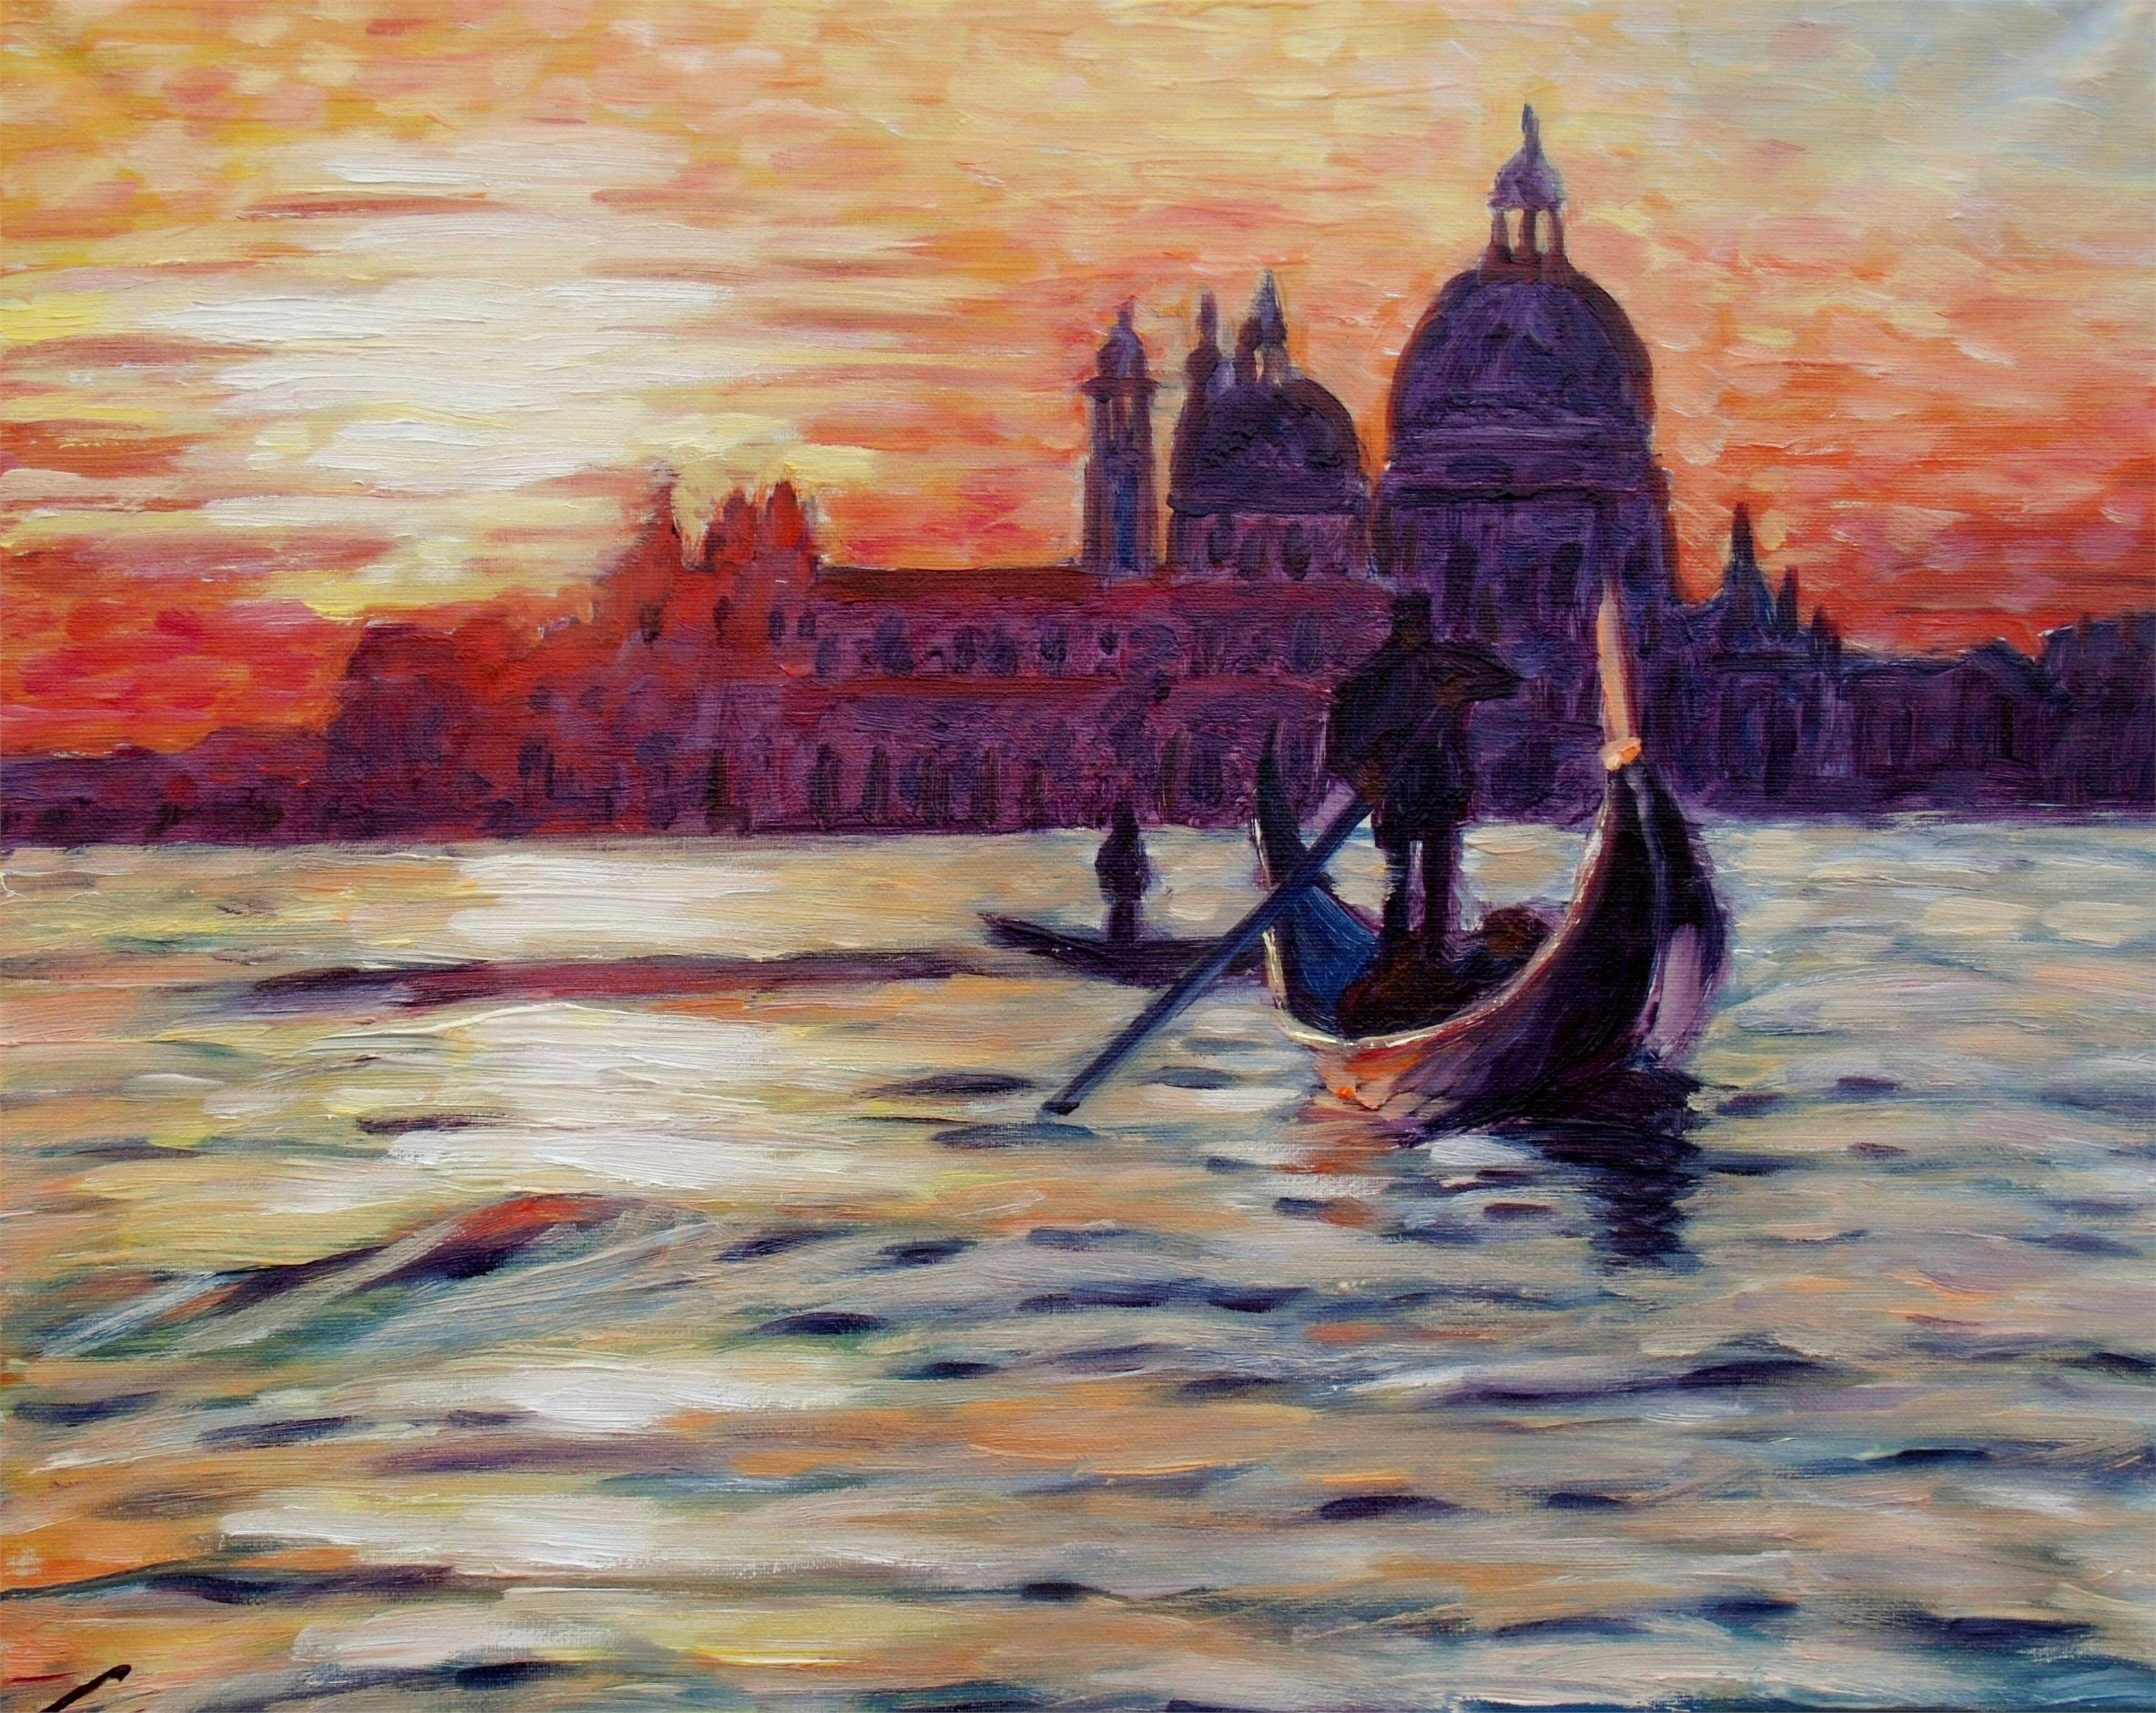 Sunset at Venice, original Landscape Canvas Painting by Elena Sokolova